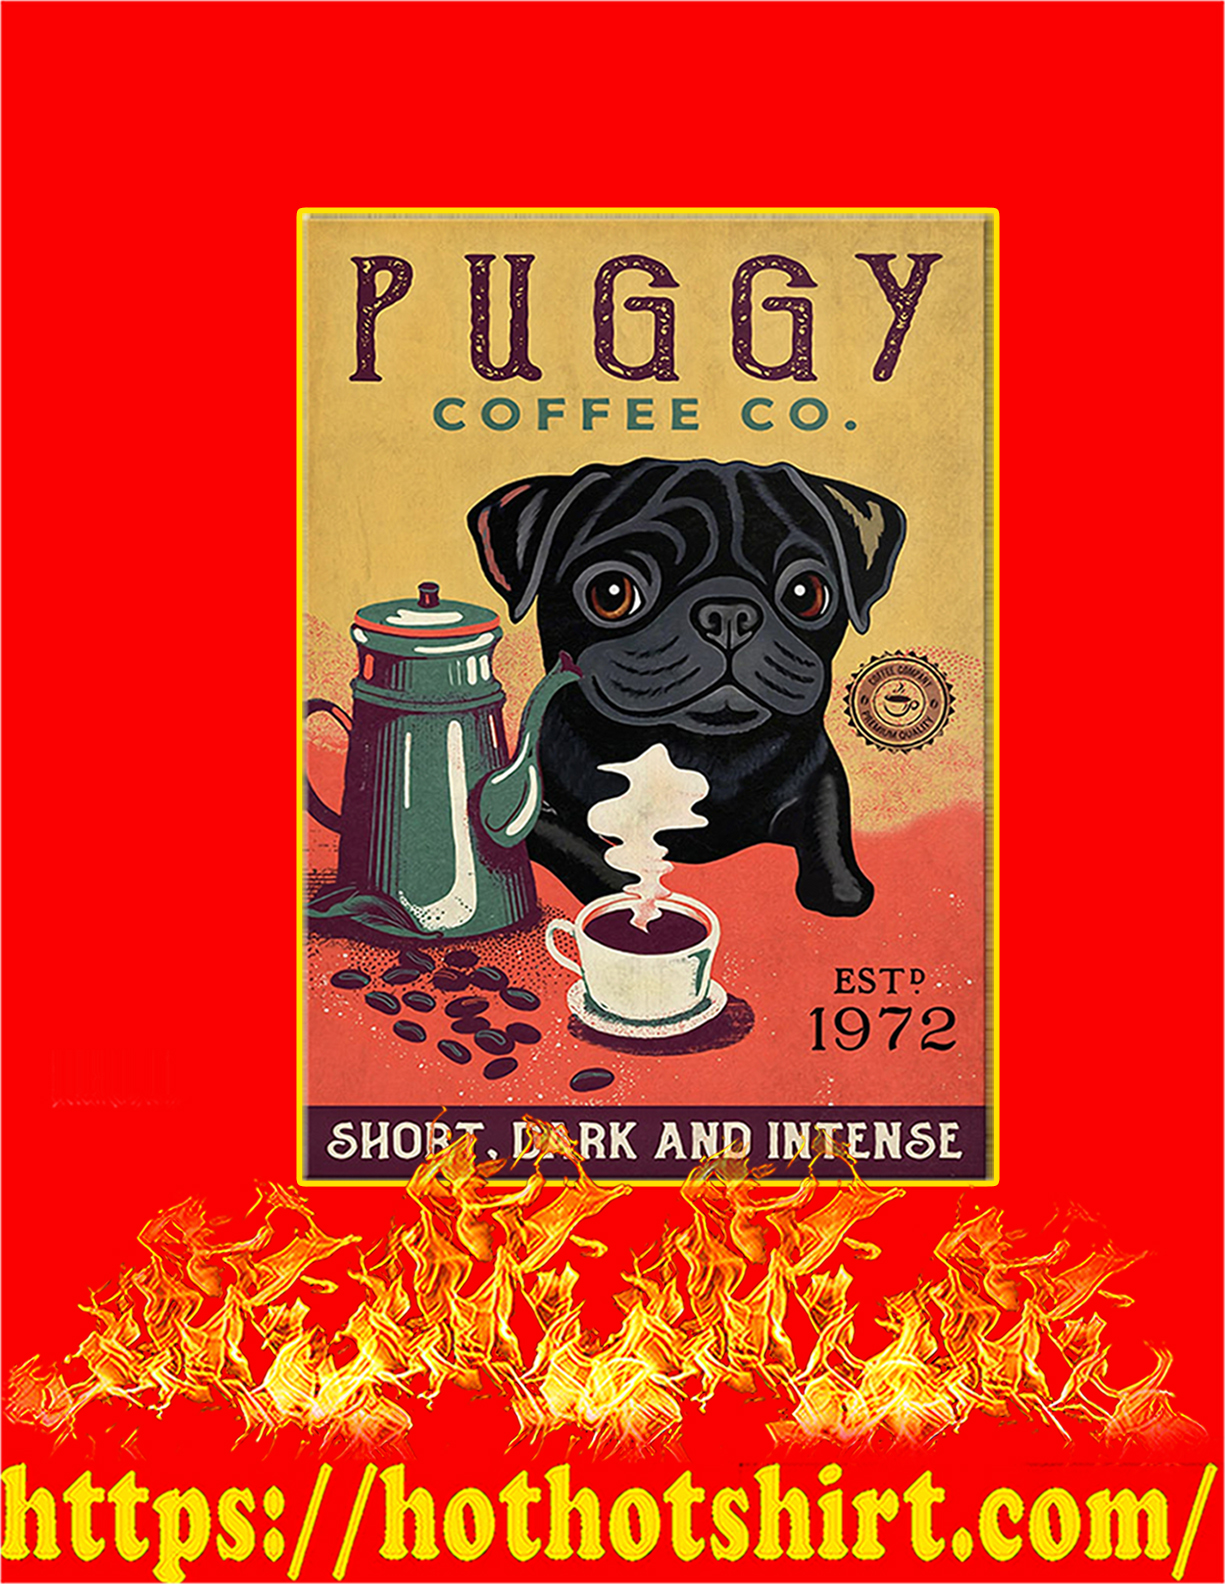 Puggy coffee co poster - A3